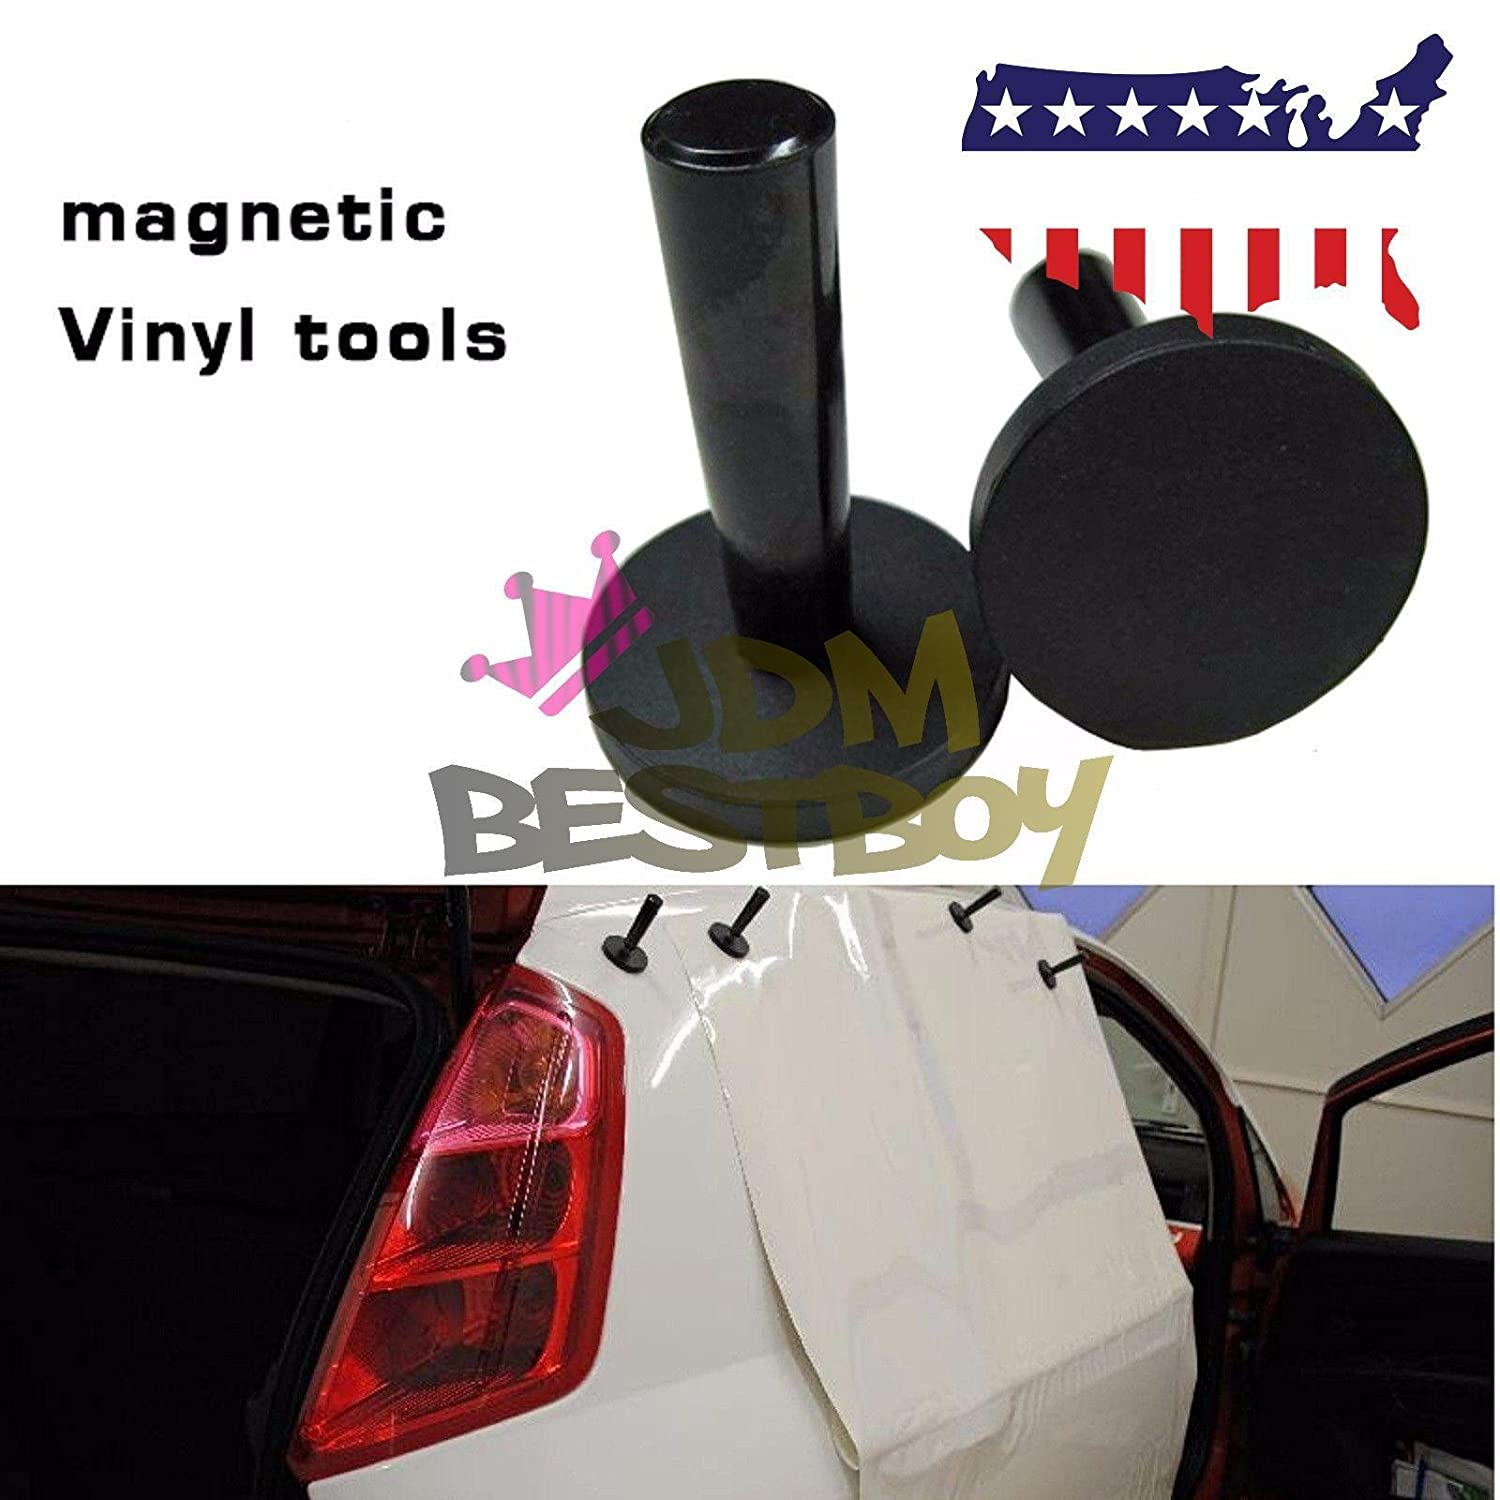 1pc Vehicle Car Wrap Gripper Magnets Sign making Graphic Vinyl Magnet Holder Professional Use JDMBESTBOY